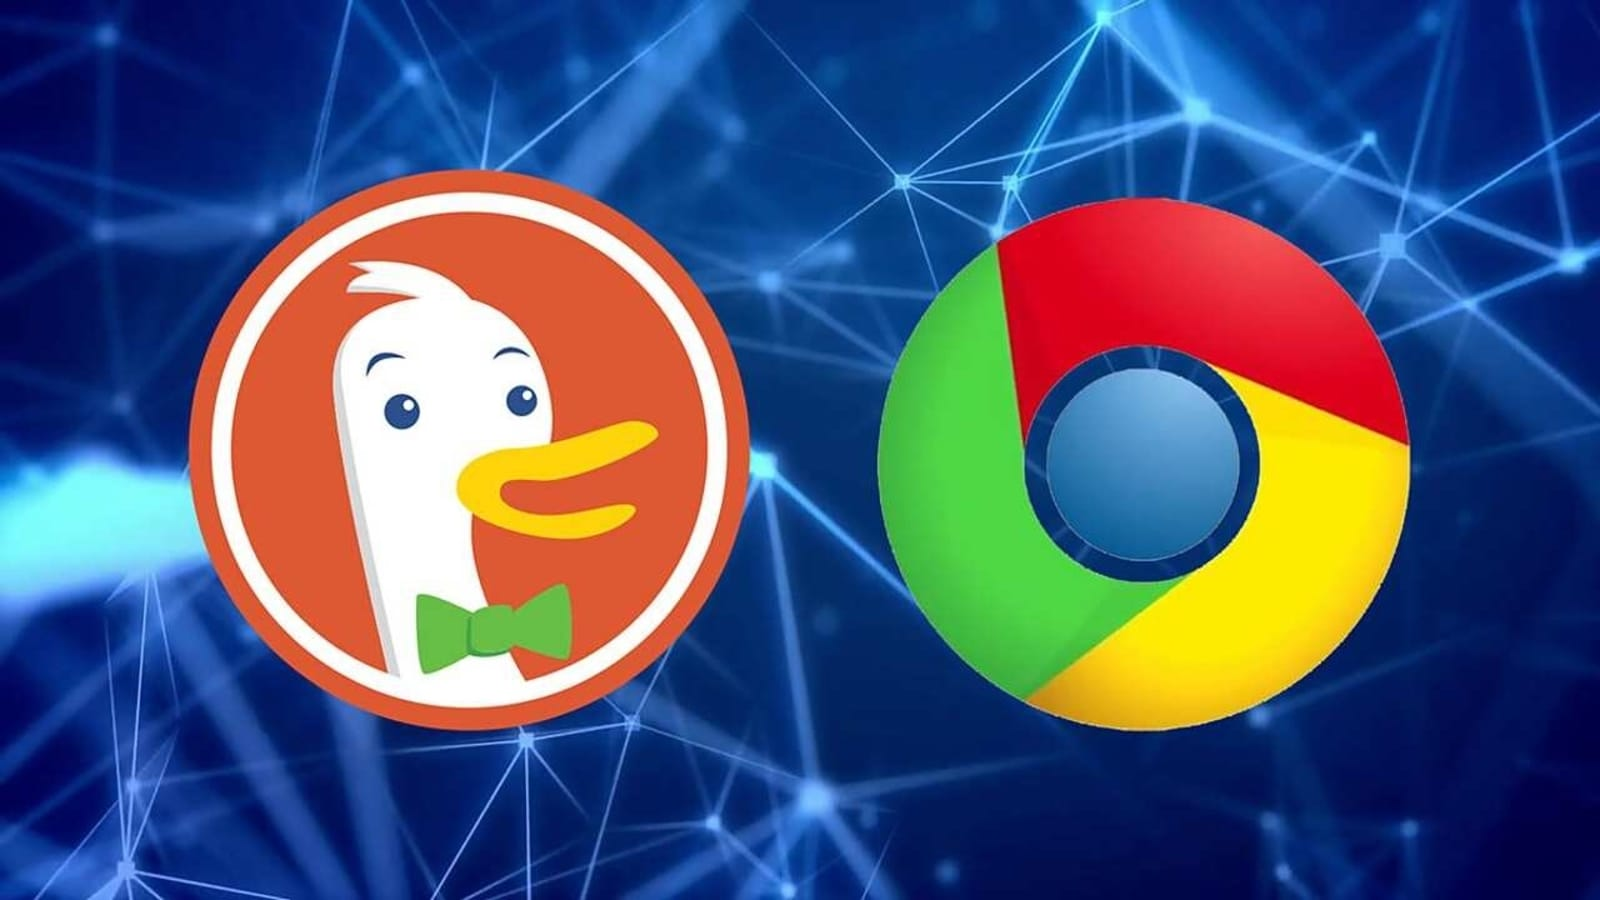 DuckDuckGo is asking people to block Google's new tracking